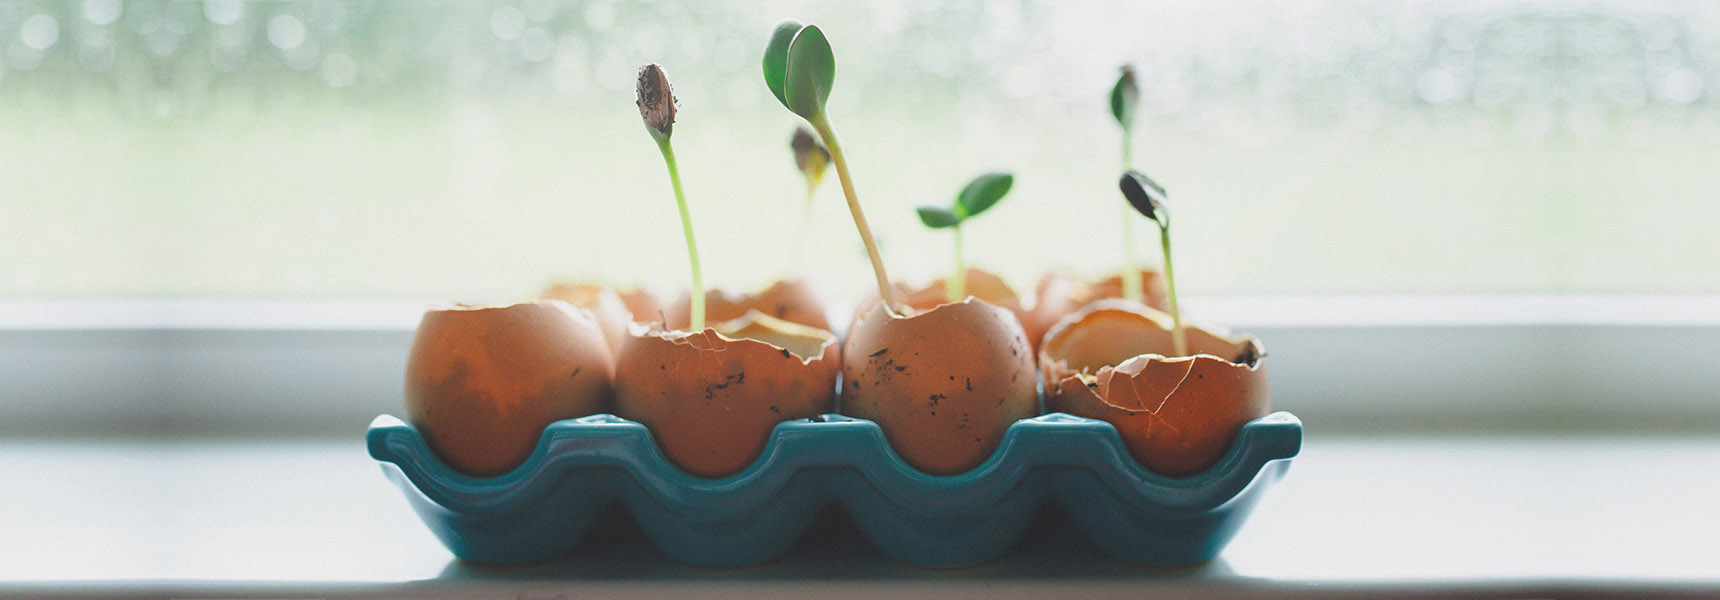 Photo of plants growing in egg shells to depict someone beginning to invest money.